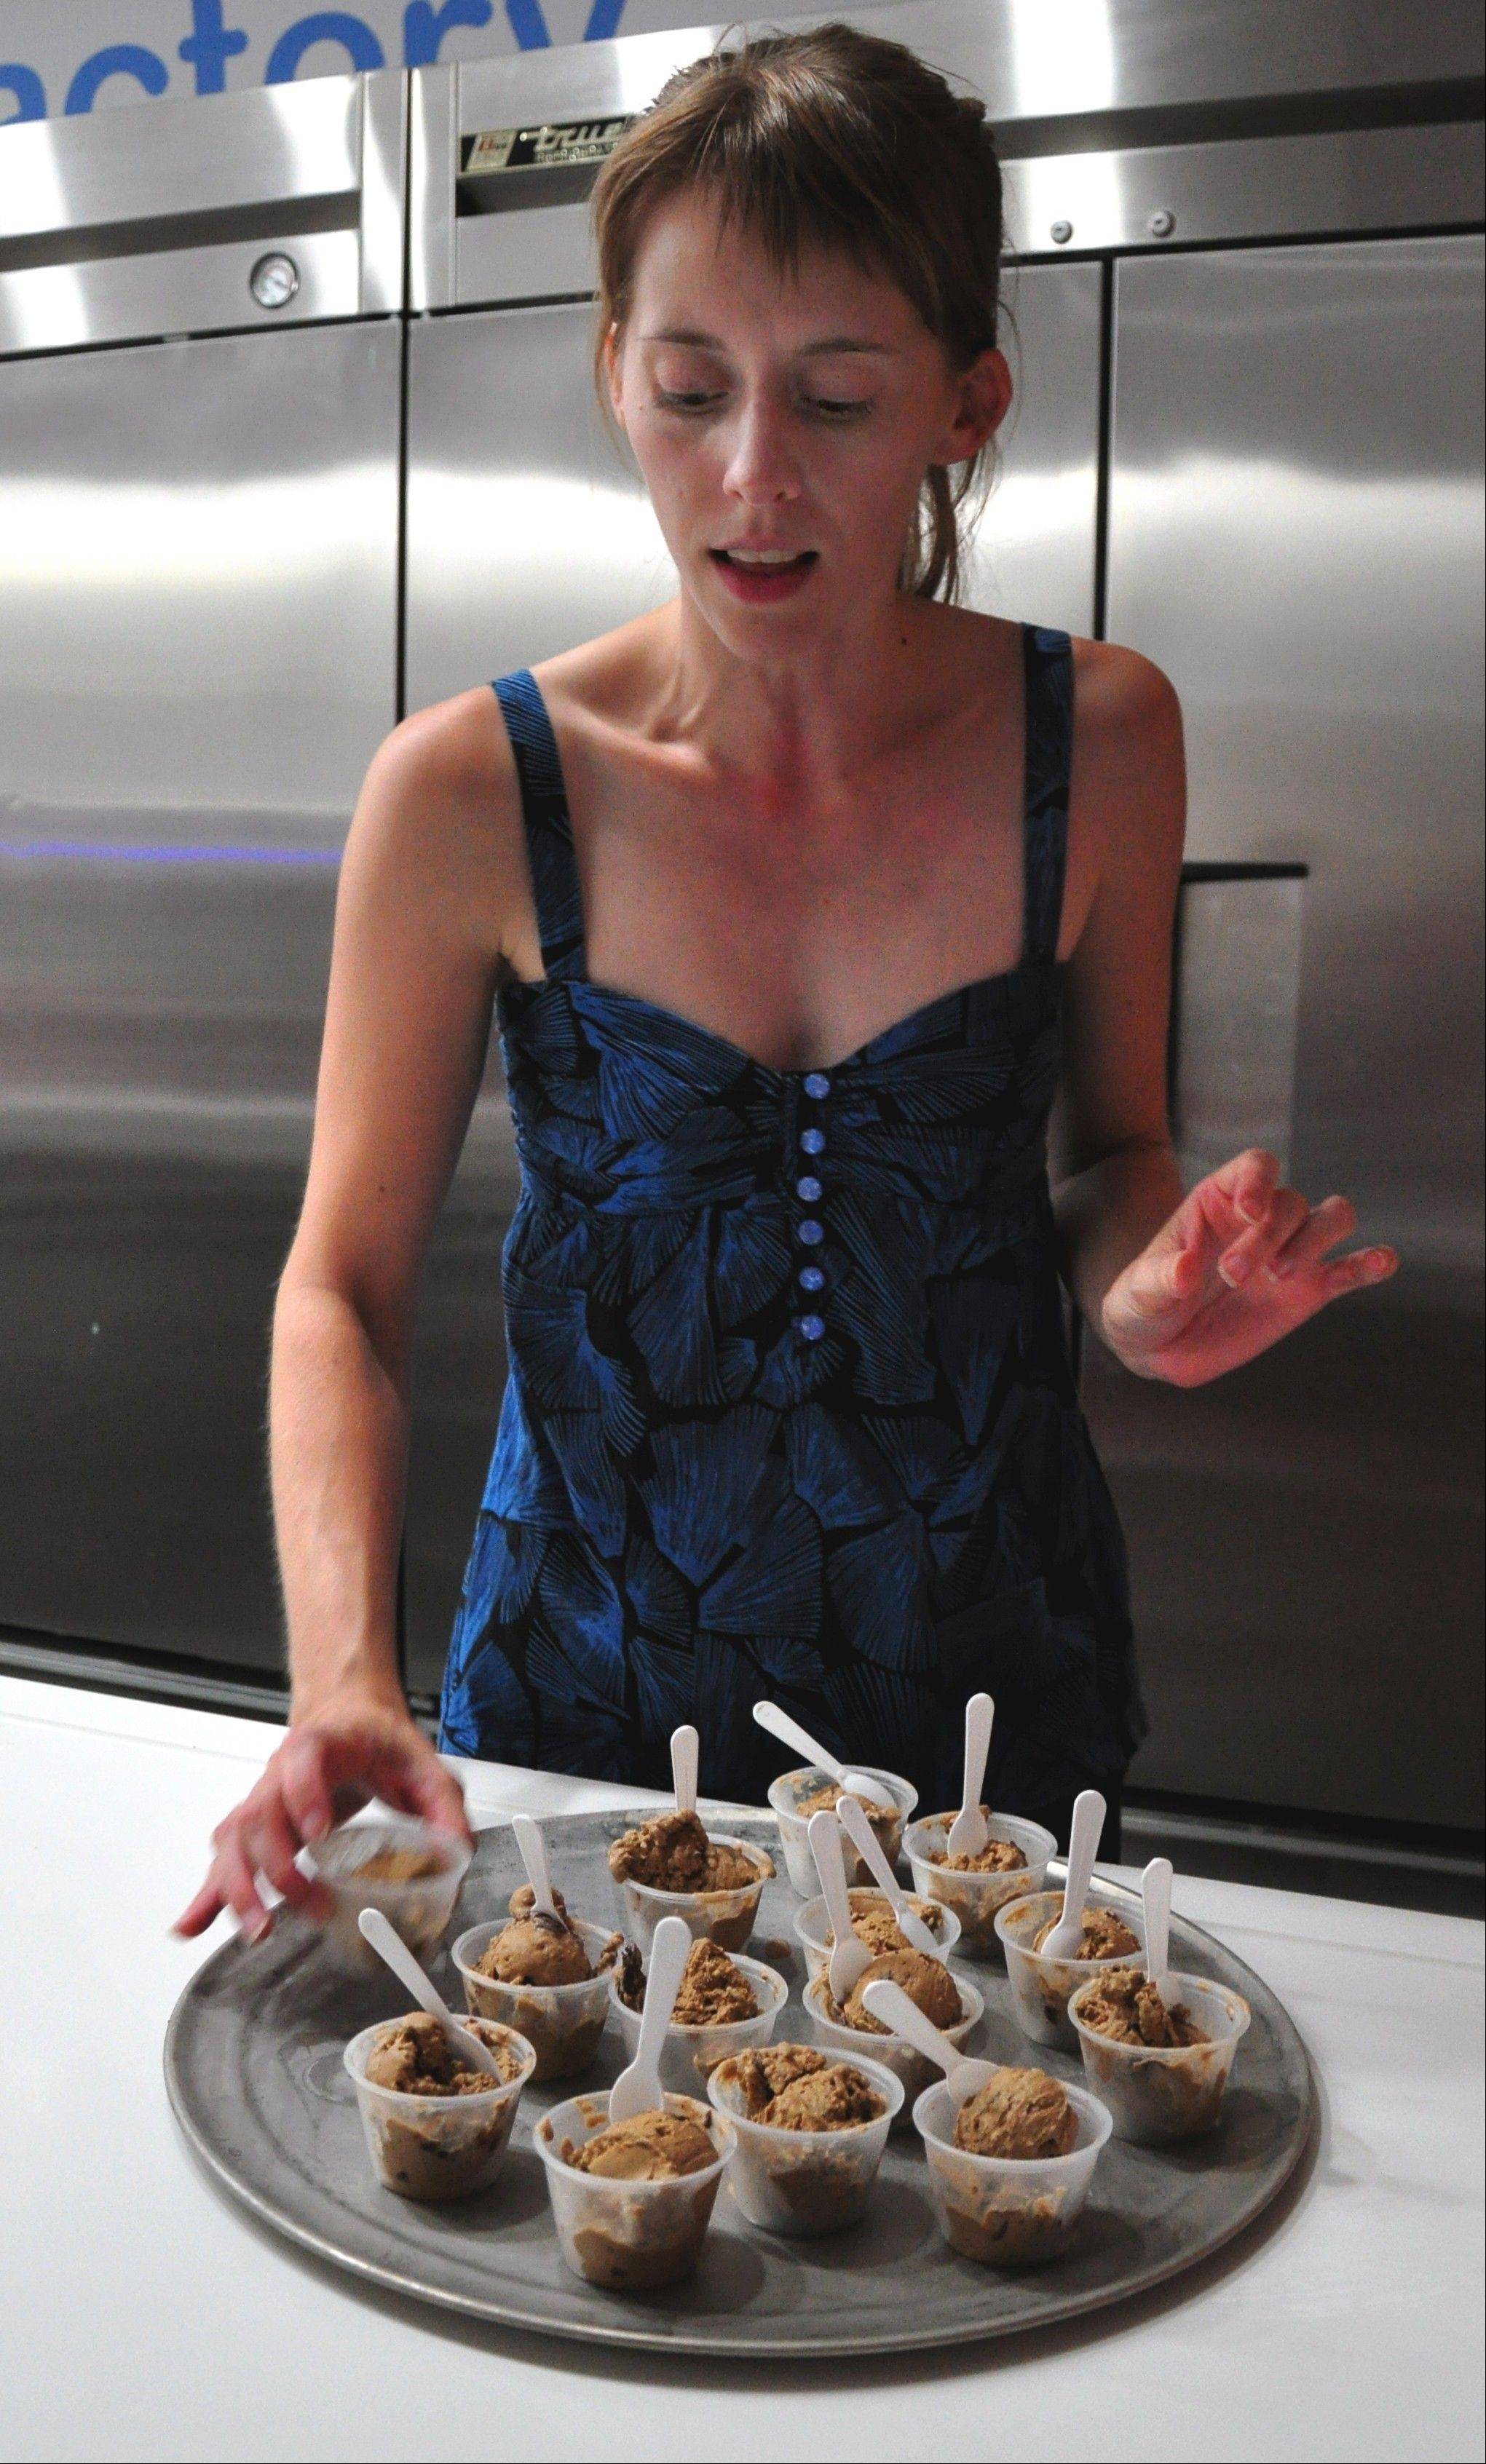 Tour guide Carrie Drapac readies samples of ice cream for food tour participants at iCream where frozen desserts are custom made using liquid nitrogen.